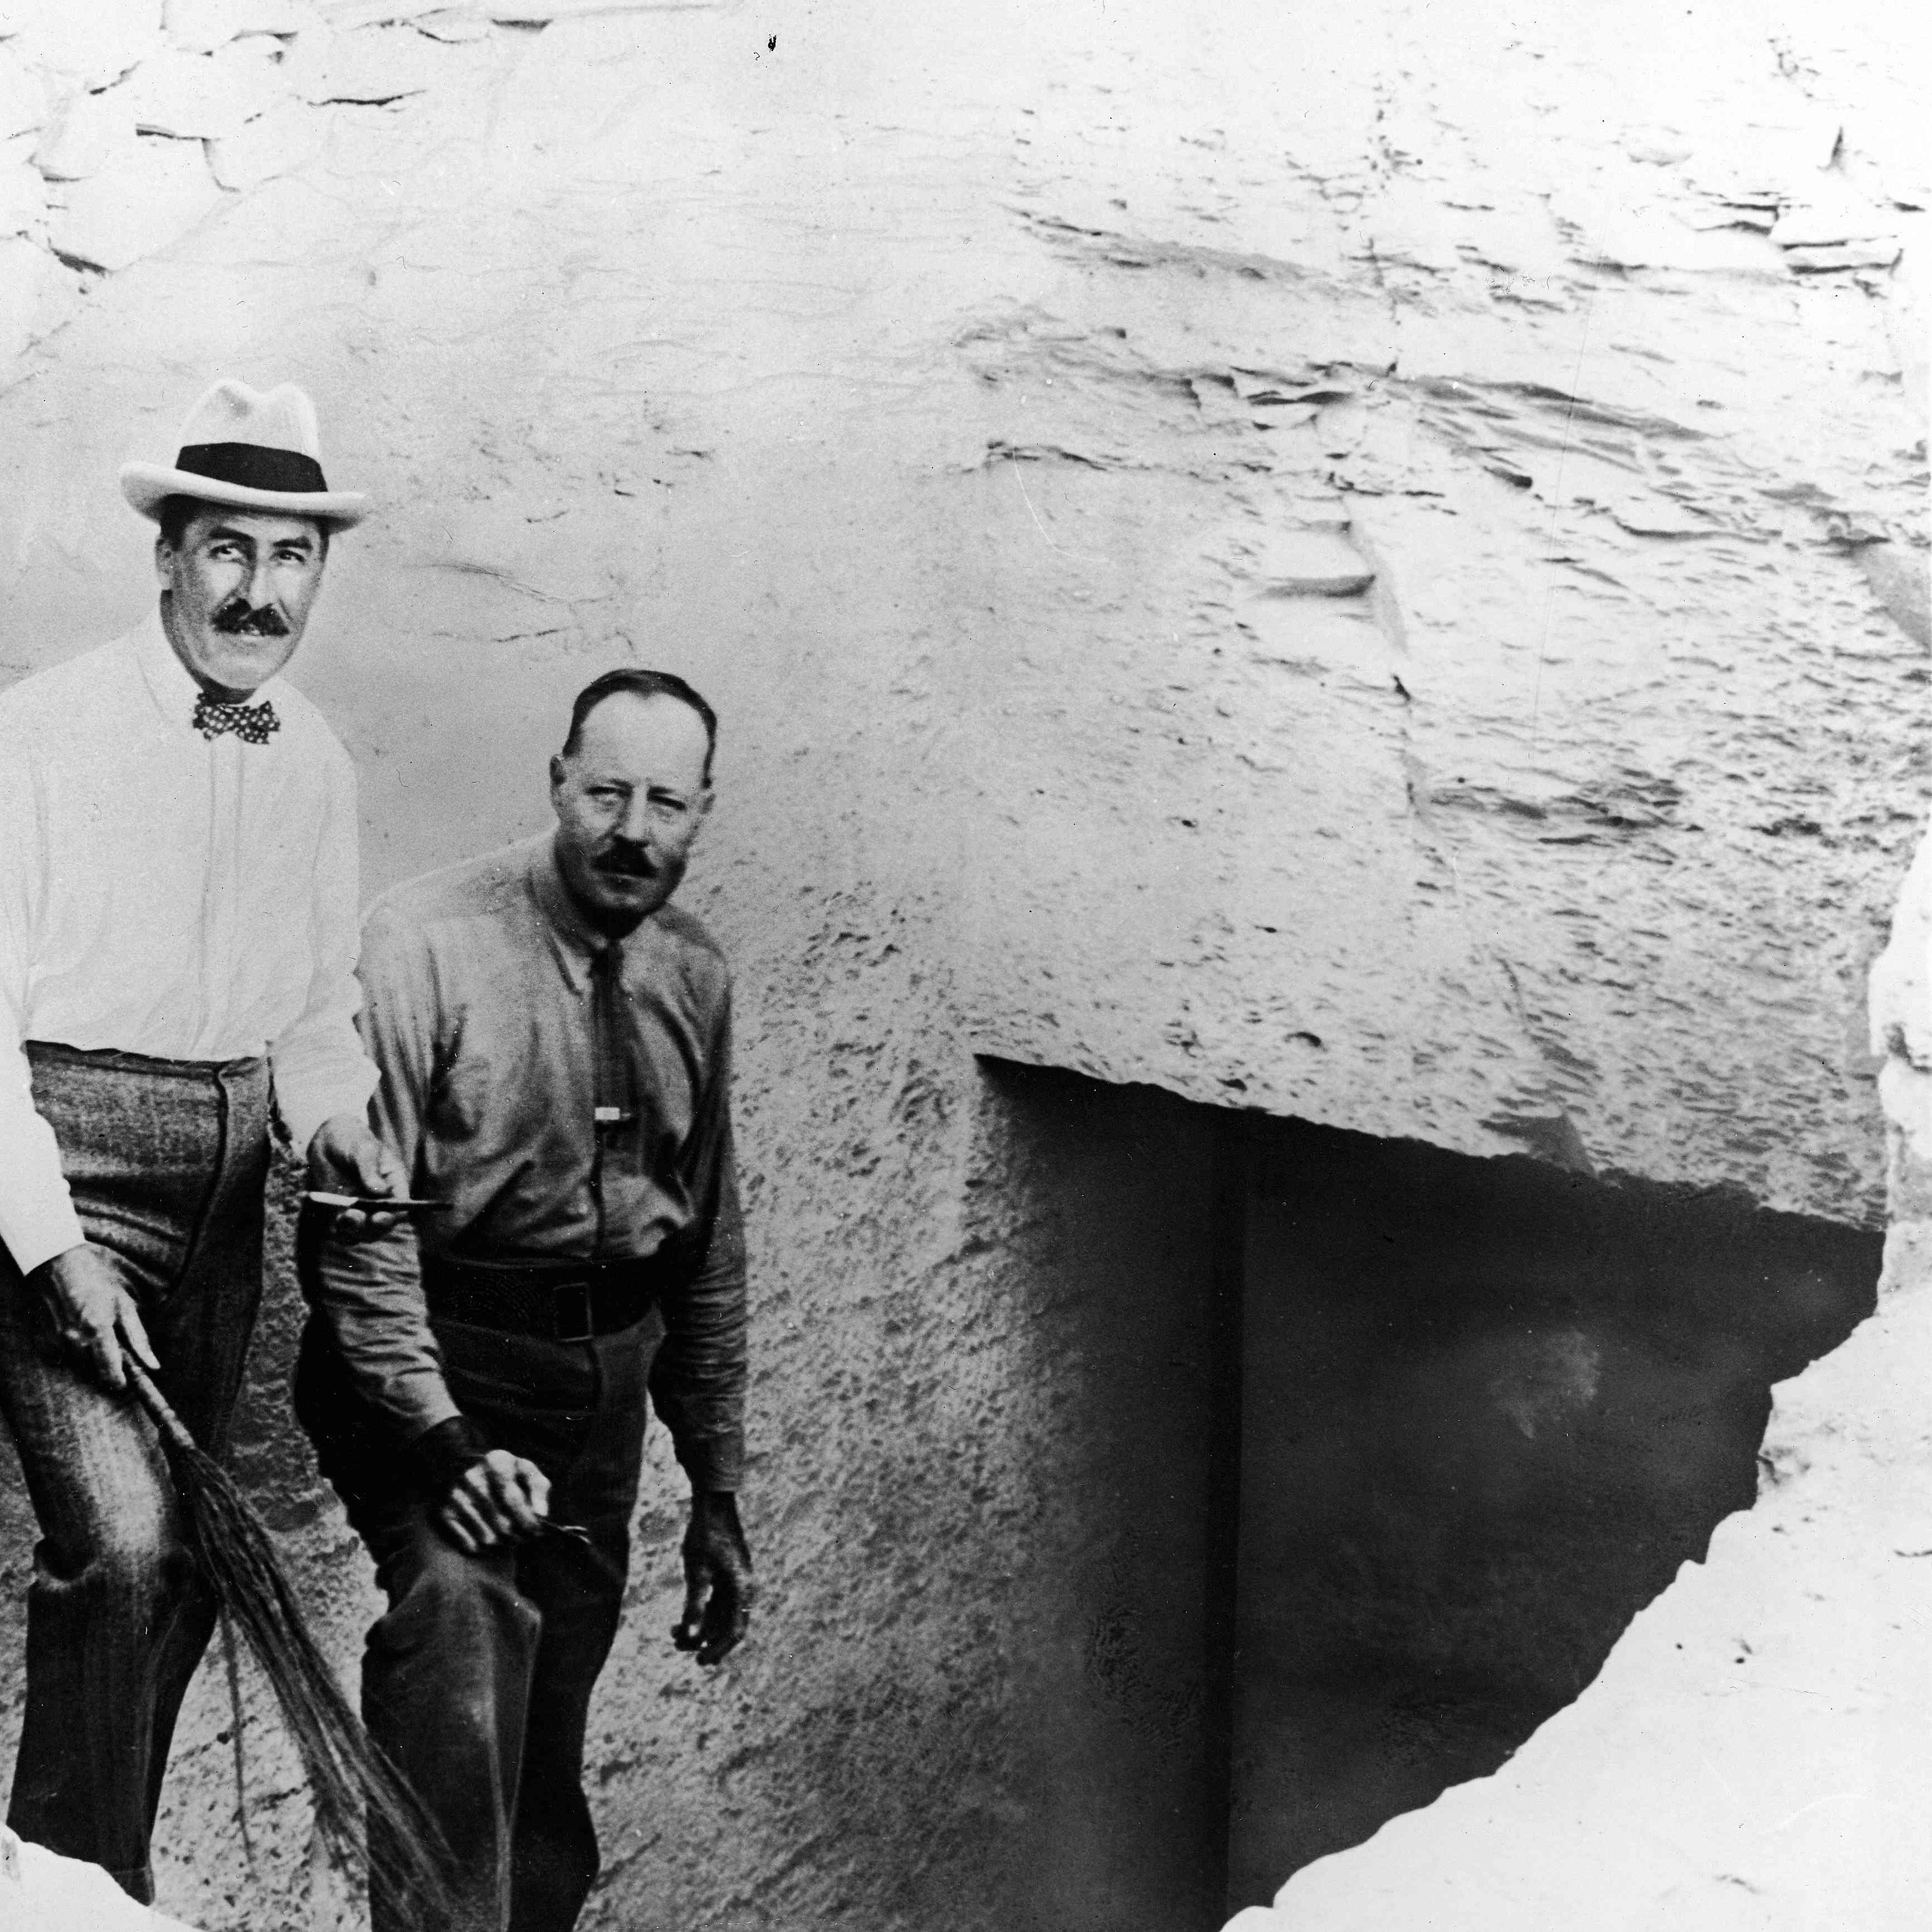 Carter and his assistant at the steps of King Tut's tomb